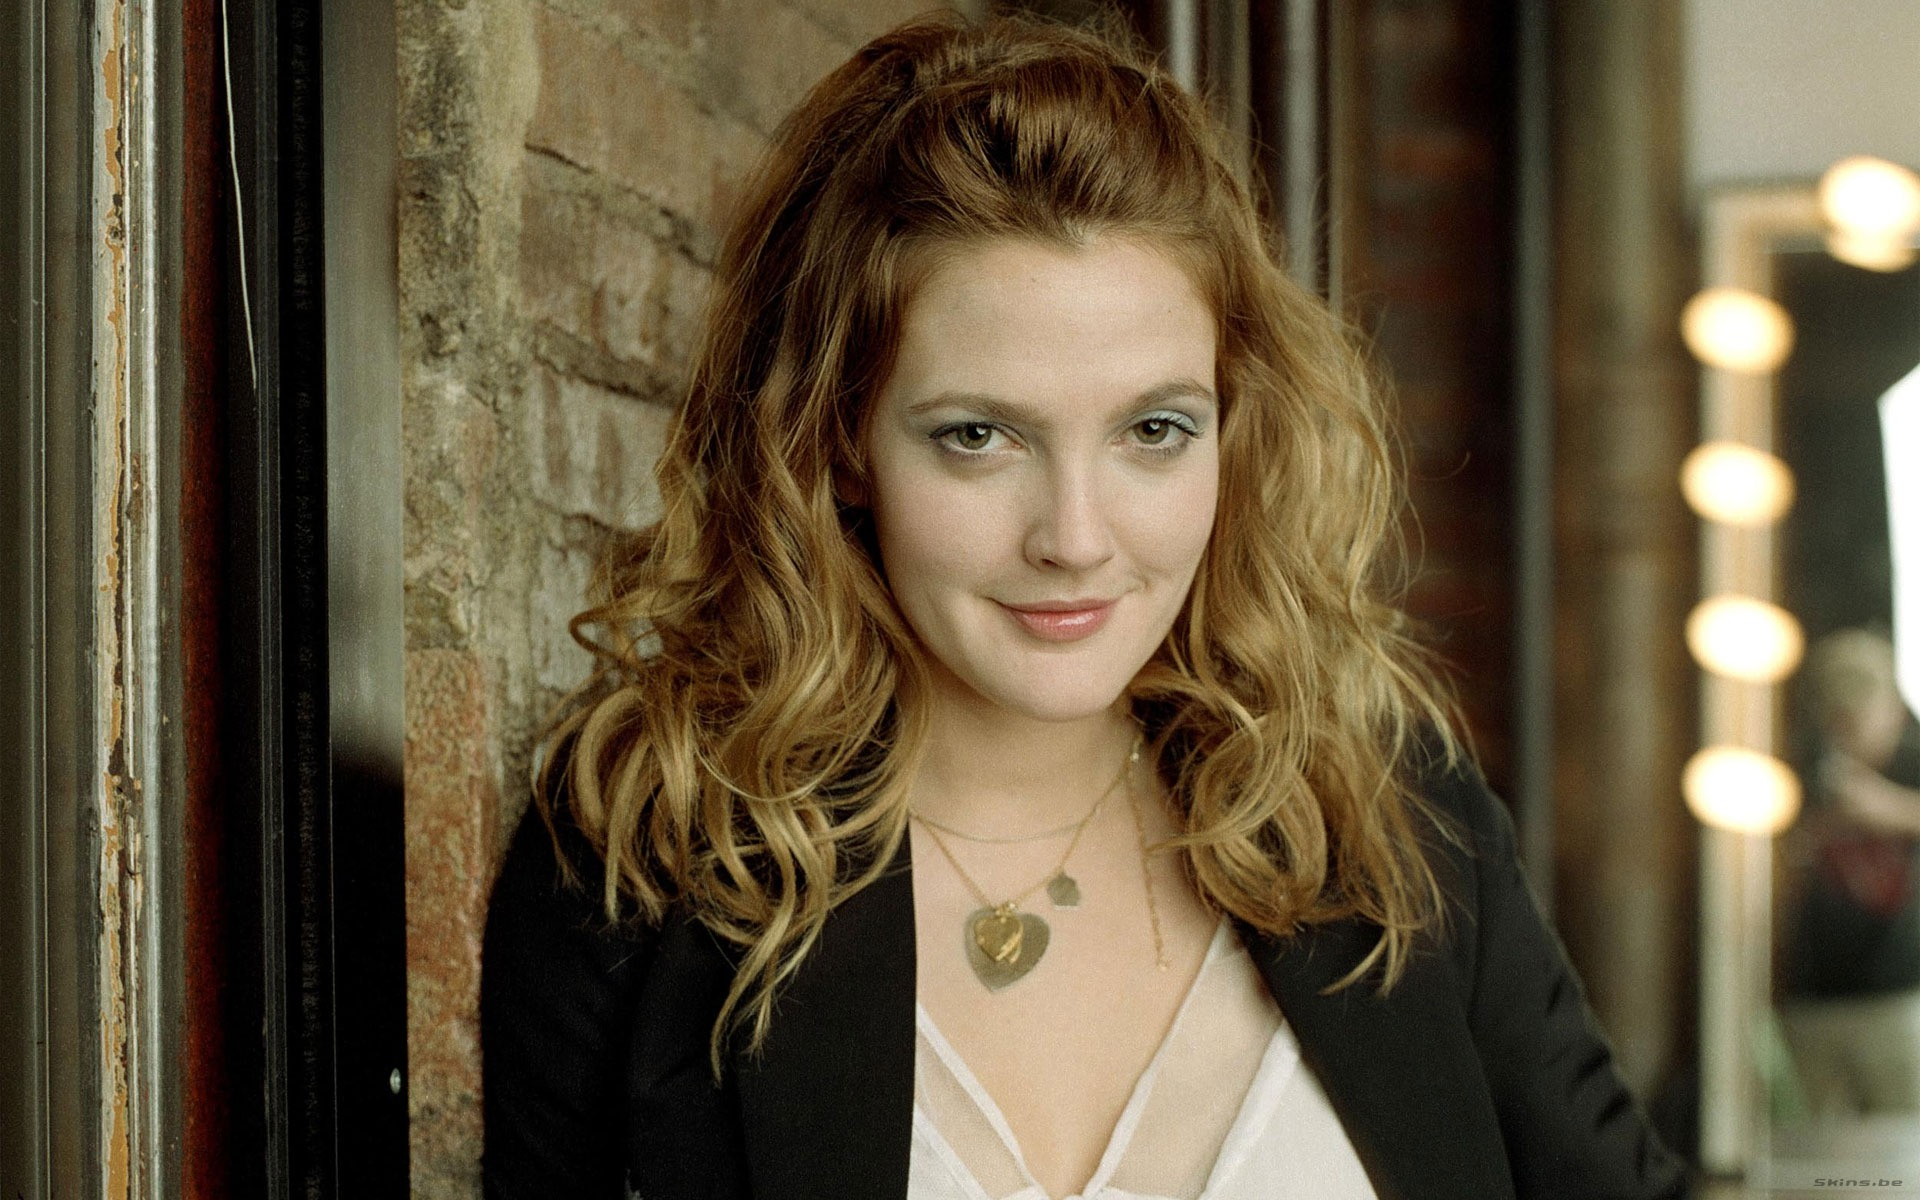 Drew Barrymore Wallpapers High Quality Download Free